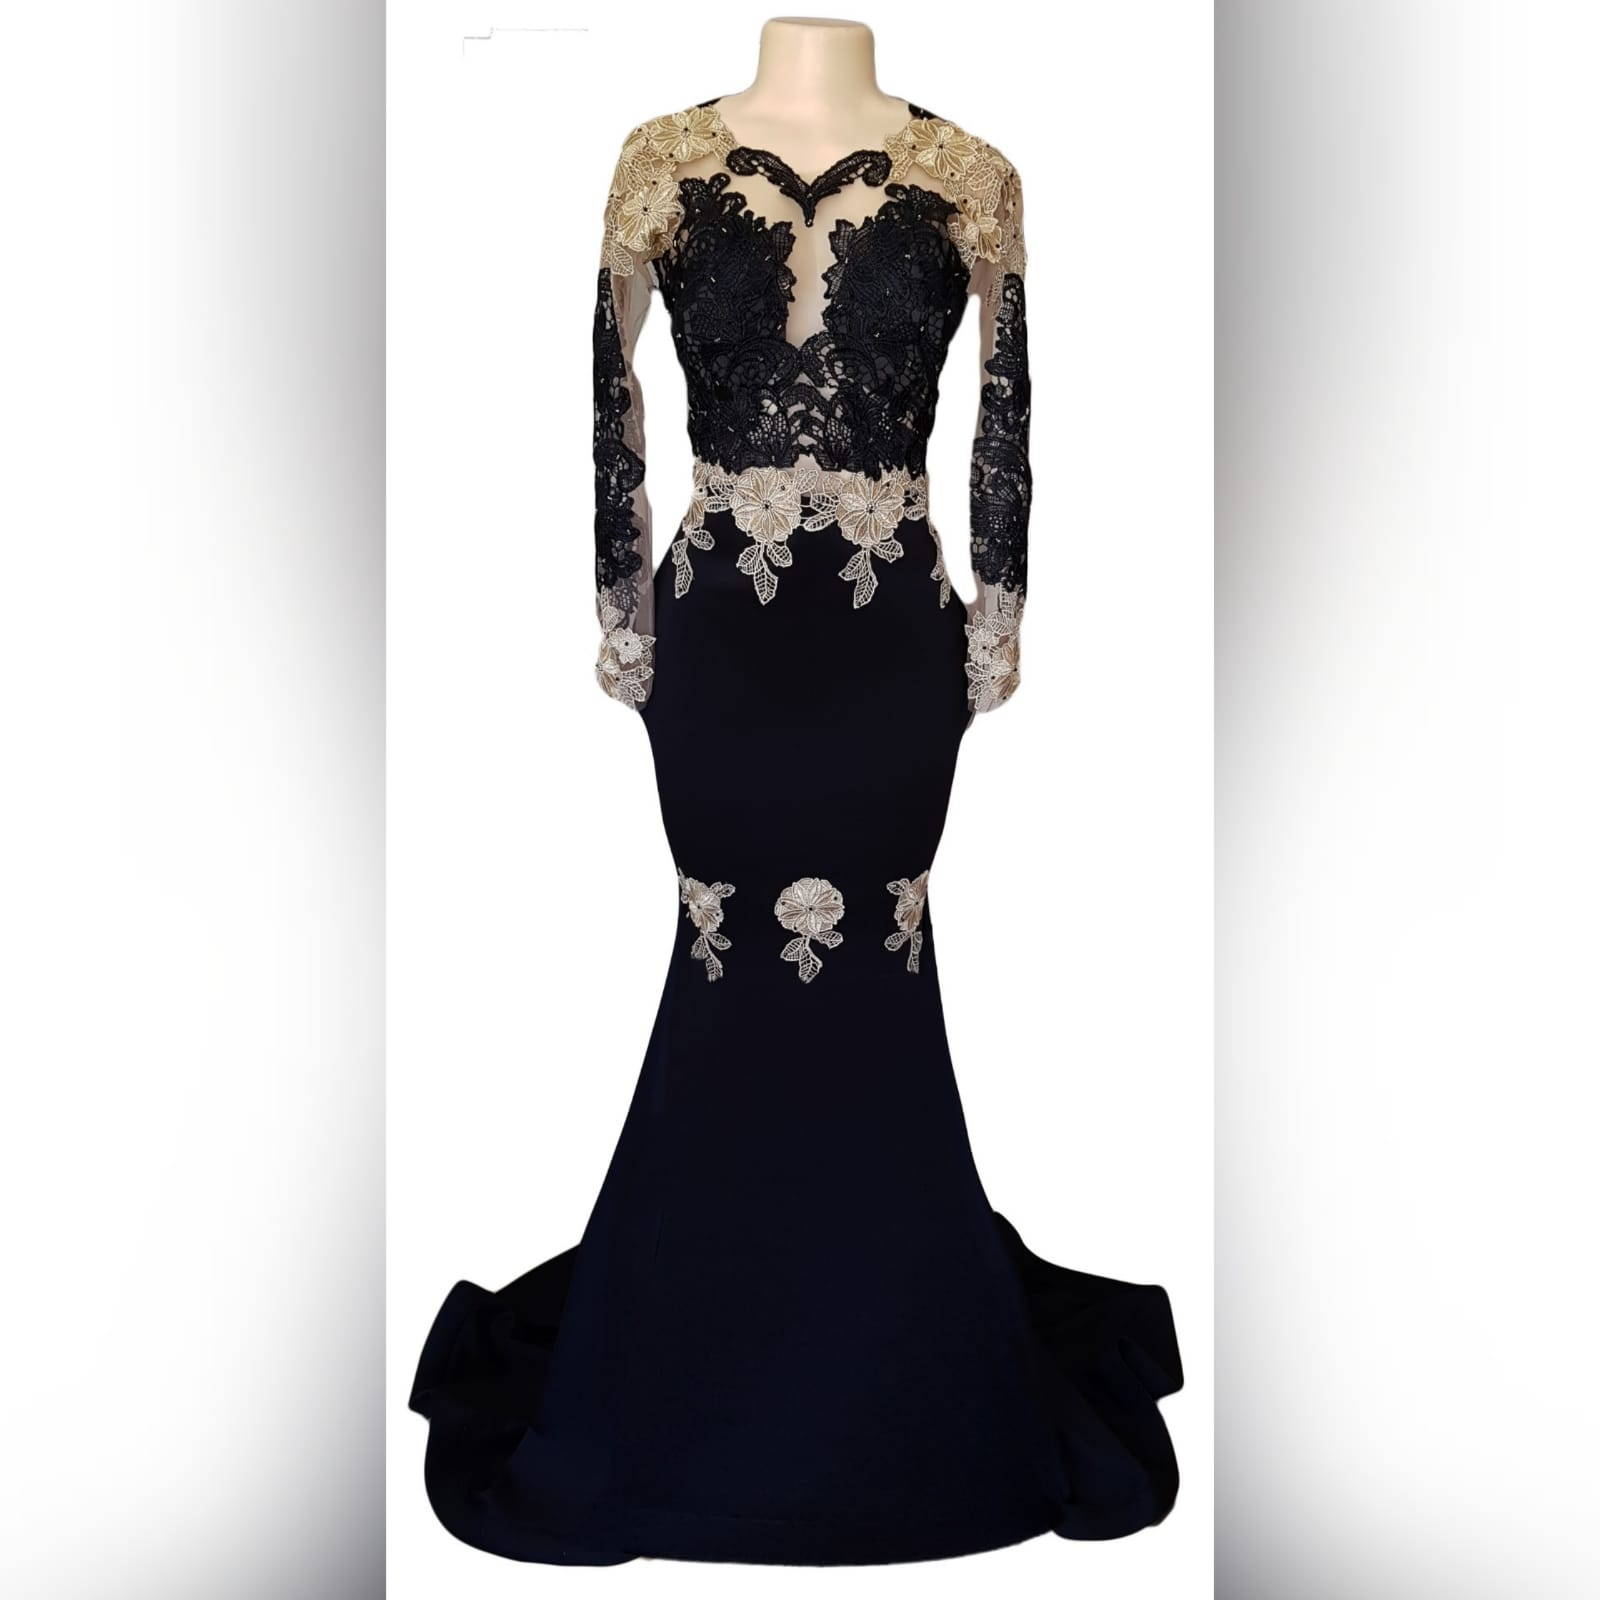 Black & gold soft mermaid prom dress 8 black & gold soft mermaid prom dress with an illusion lace bodice and long sleeves. With an open back and a train. Lace detailed with beads.